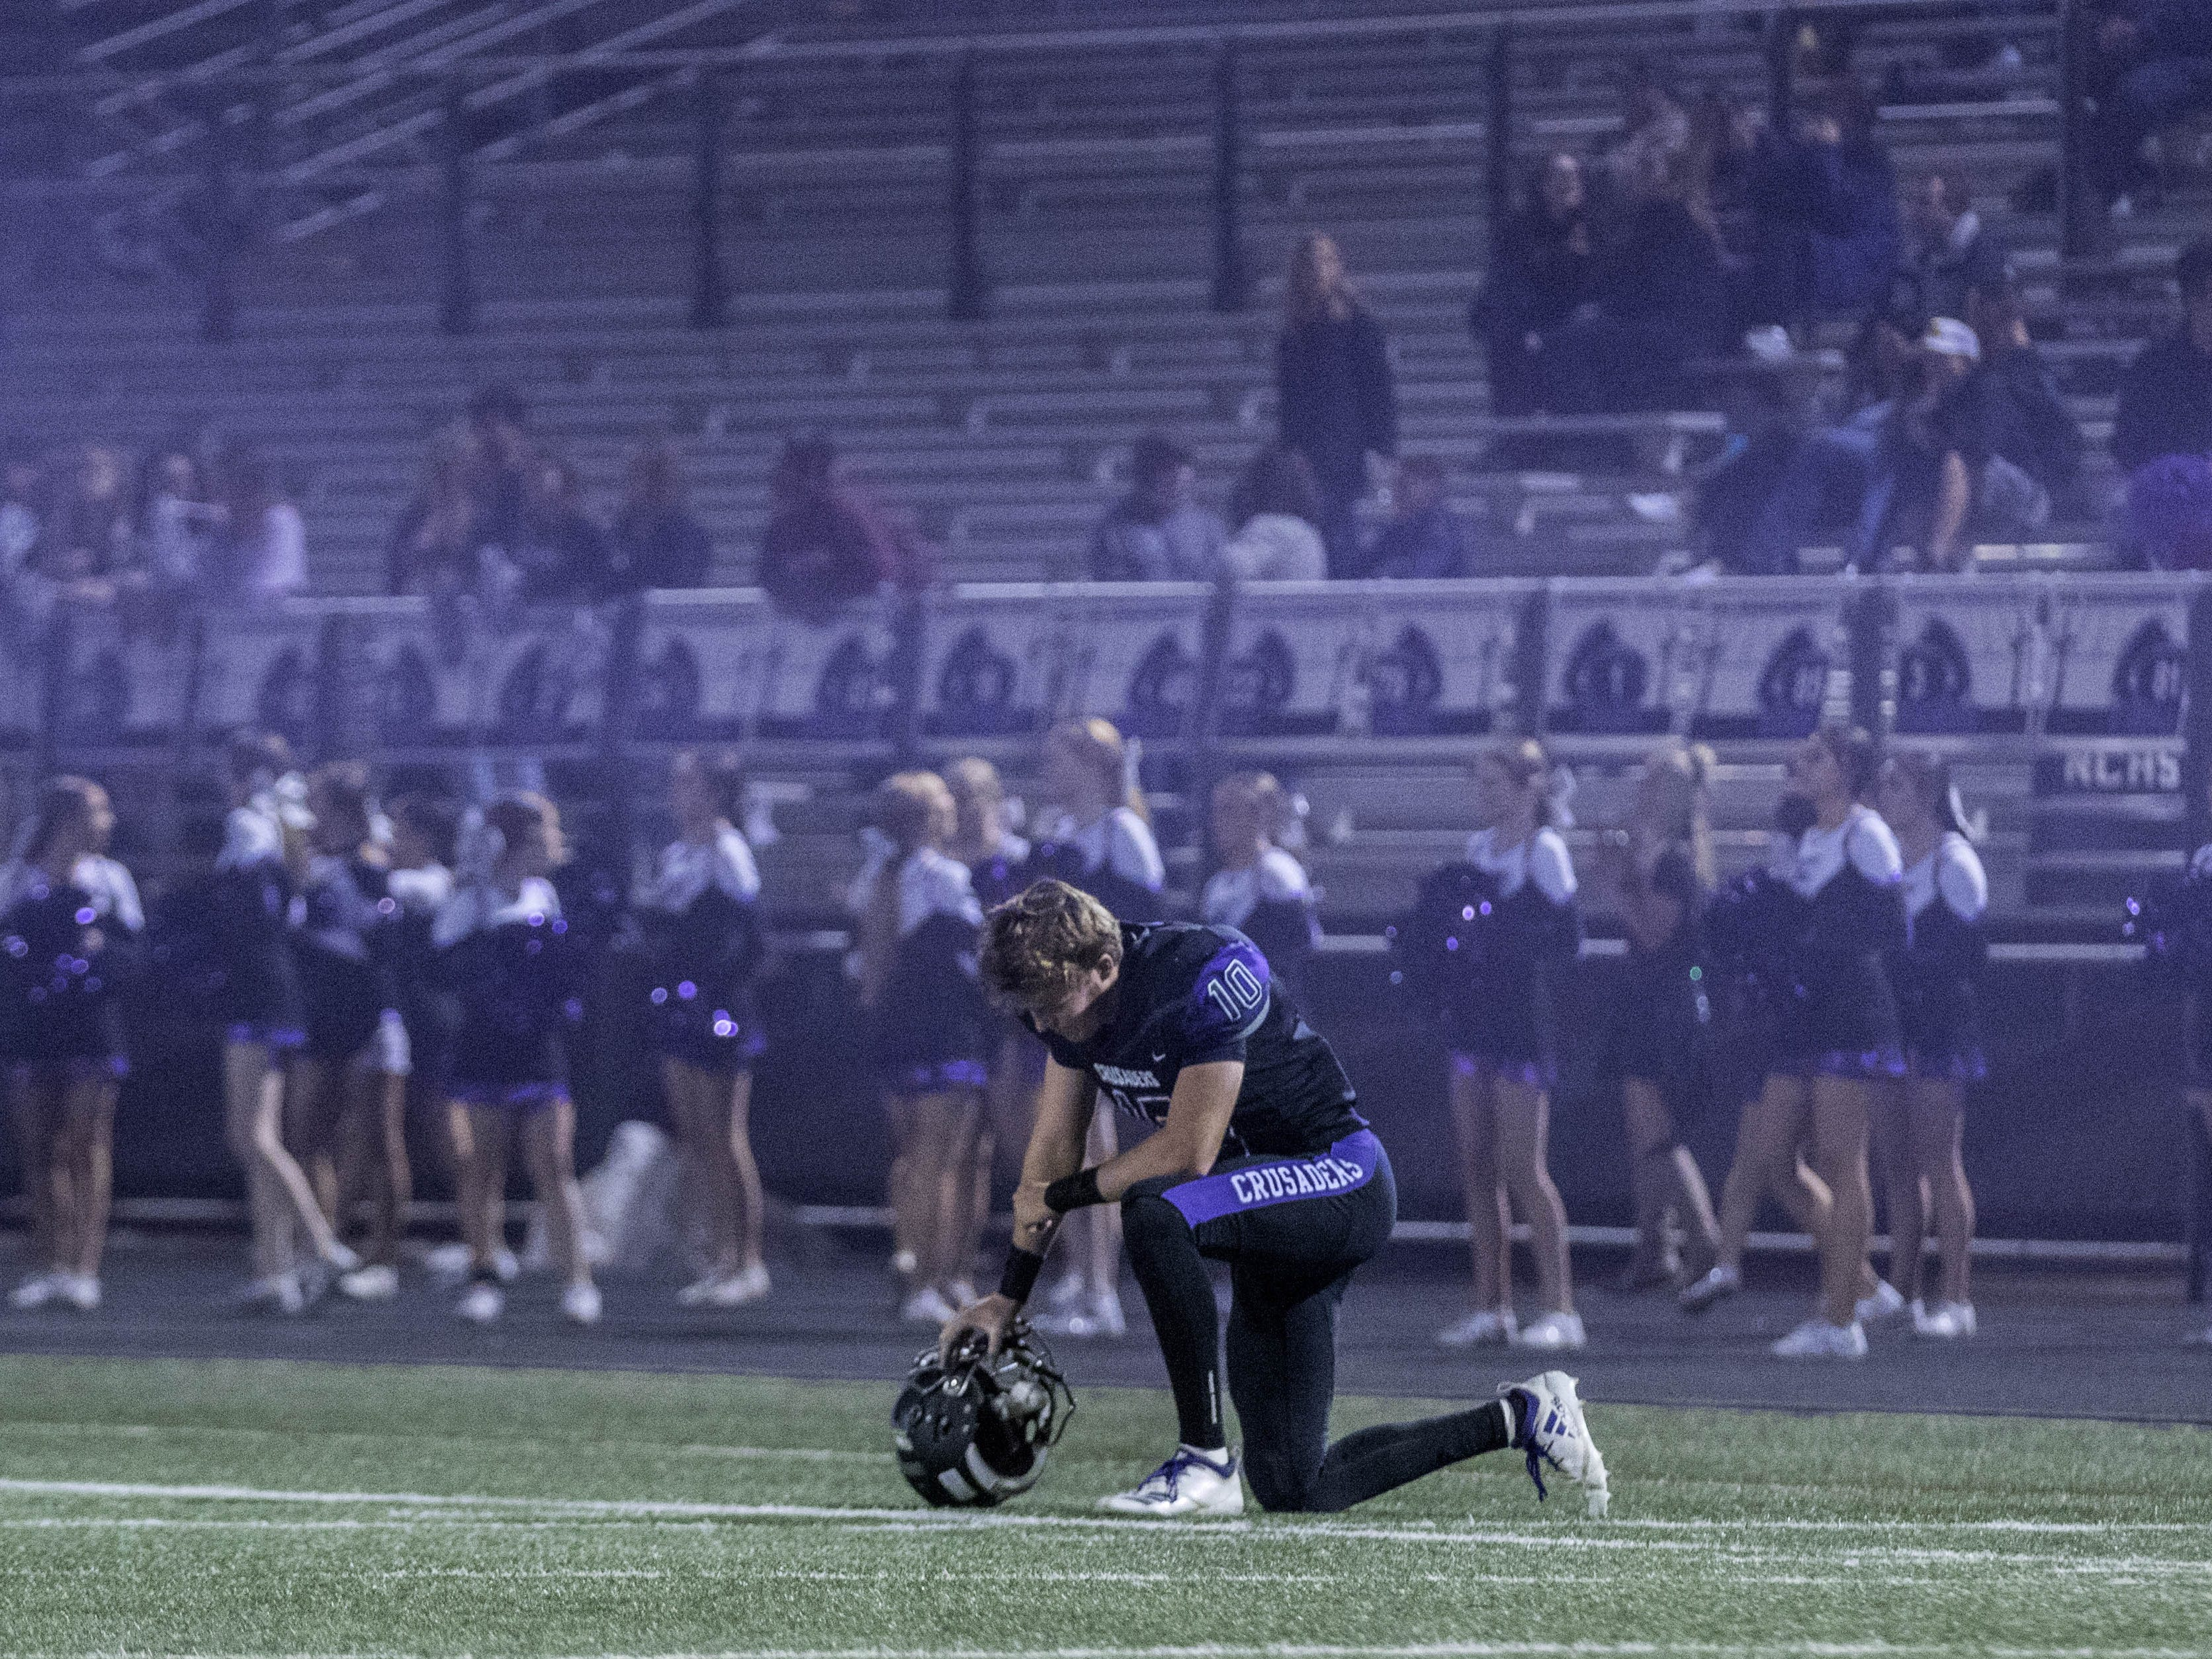 Northwest Christian's Aren Van Hofwegen has a moment to himself before their game with Valley Christian at North Canyon High School in Phoenix  Friday, Nov.17, 2018. #azhsfb